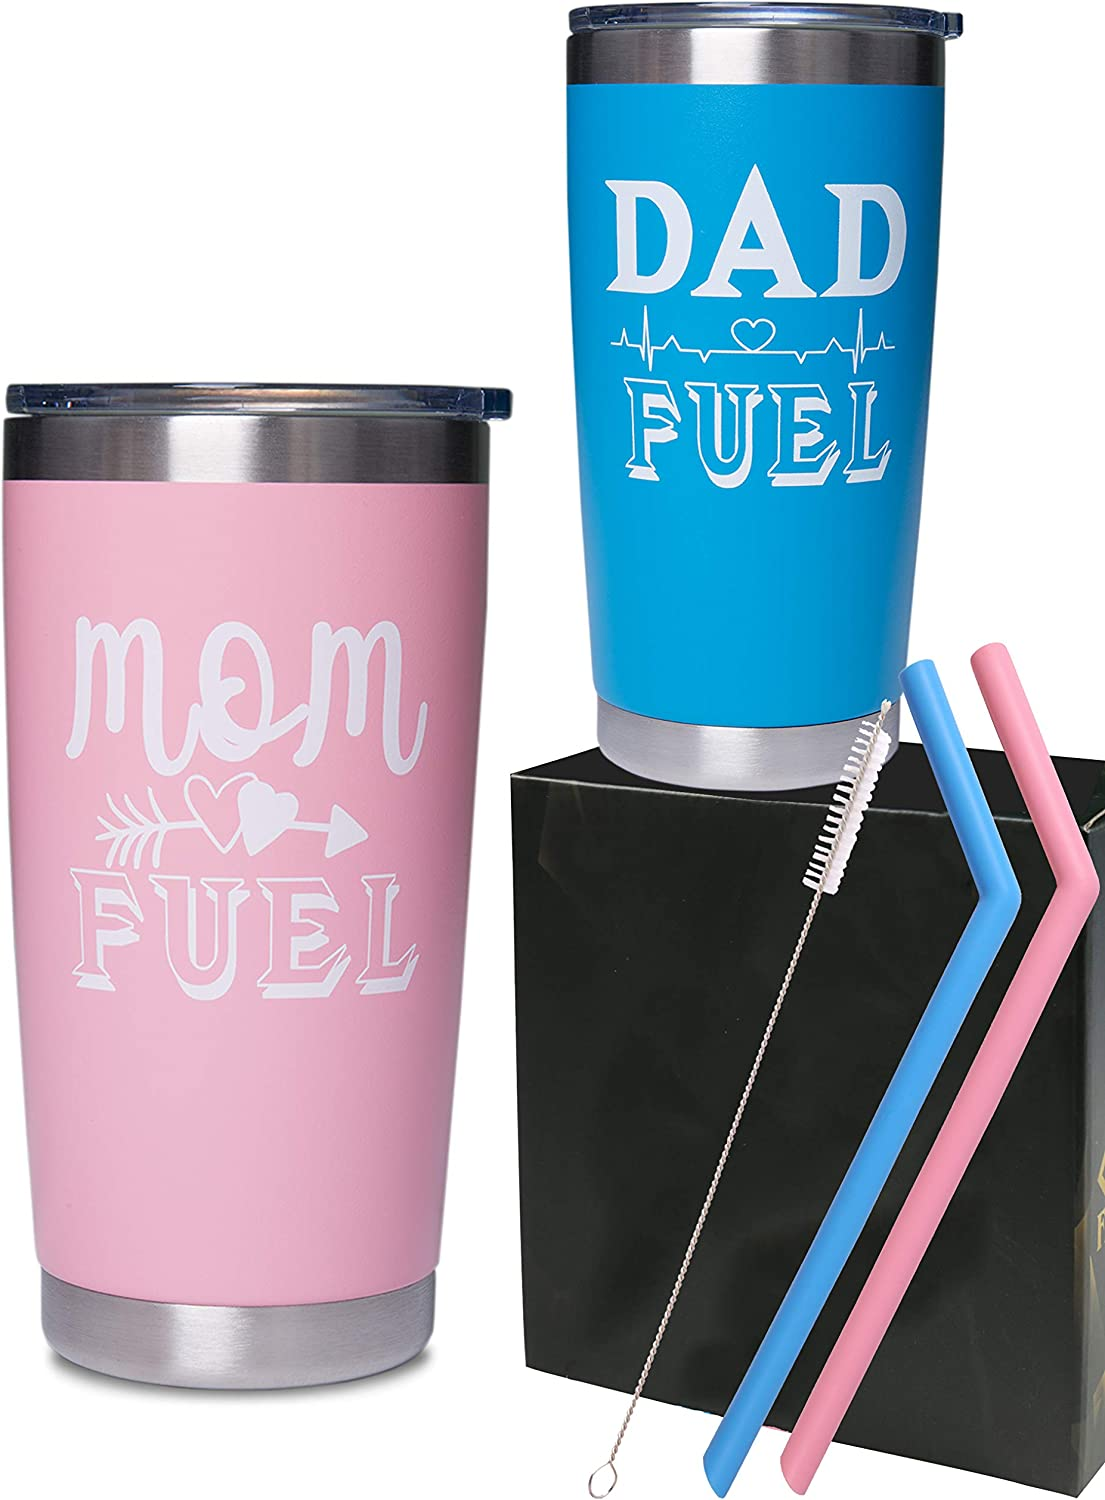 Mom and Dad Tumbler Set,Giftfor Dad and Mom,Funny Gifts for Mom and Dad,Mom and Dad Gifts,Mom and Dad Gifts for Parents,Mom and Dad Mugs,Funny Tumbler for Mom and Dad,Mom Dad Gifts Set